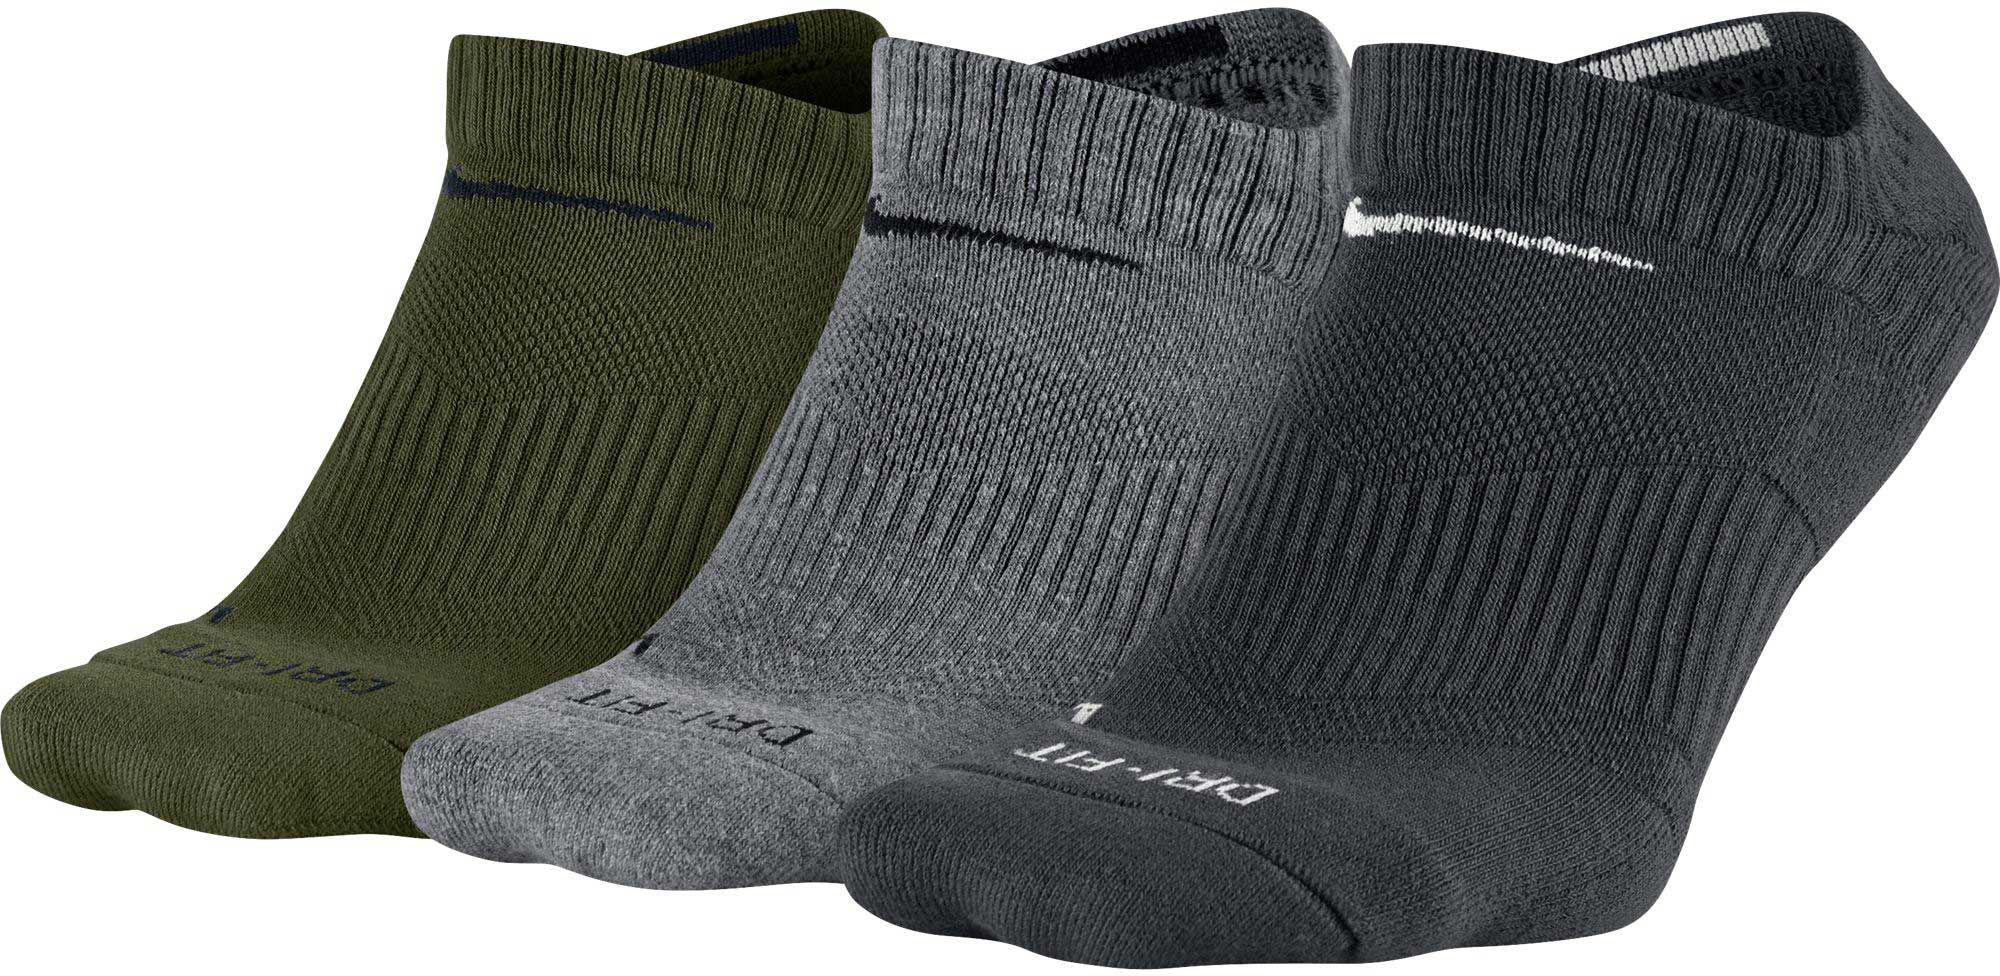 c95806386eb79e Nike Dri-fit Half Cushion No Show Socks 3 Pack in Gray for Men - Lyst